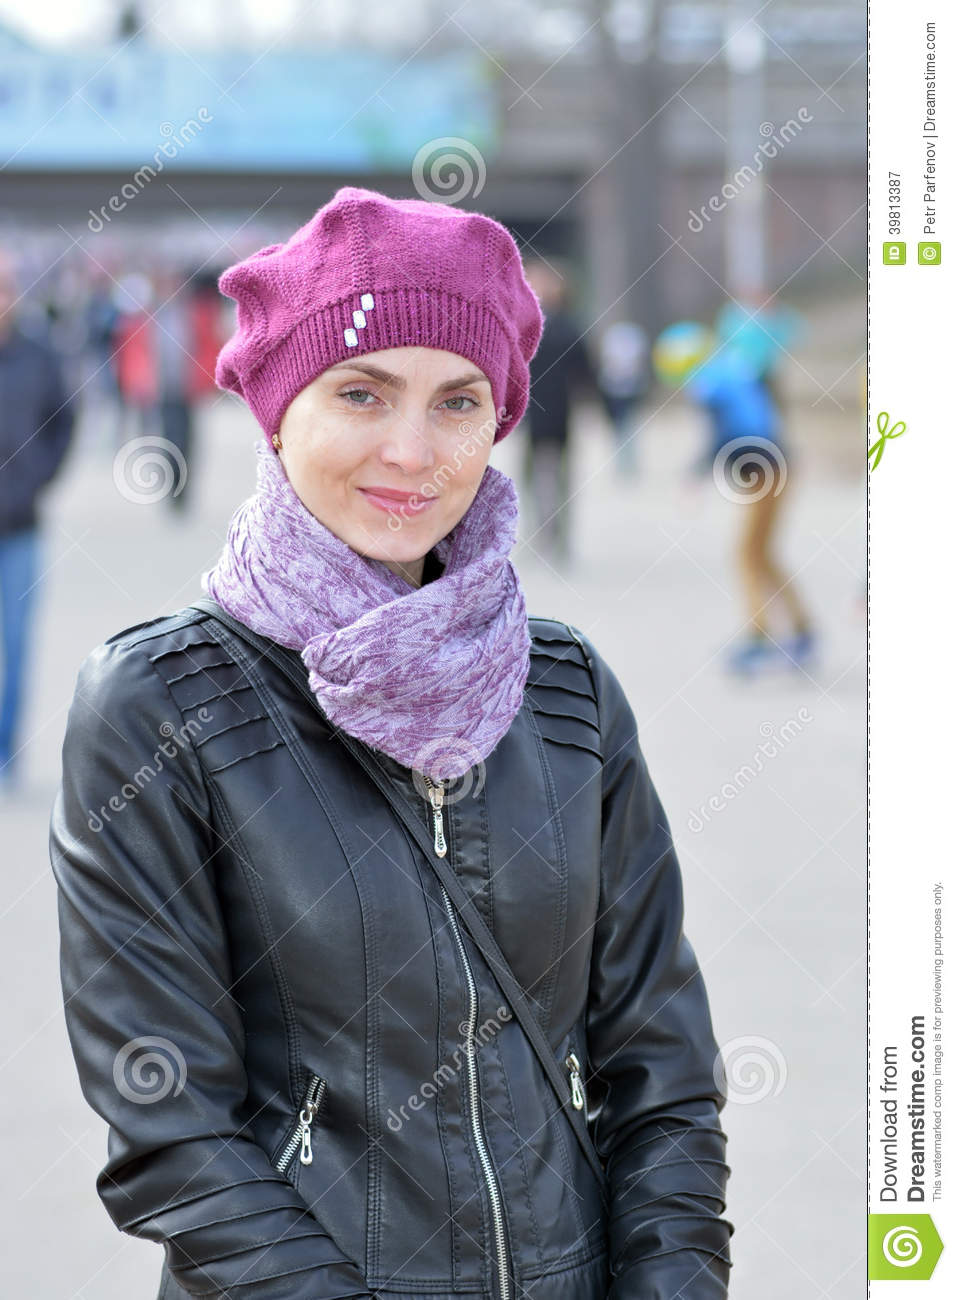 85be639a927e80 Woman in pink beret and black leather jacket on a walk. More similar stock  images. Close-up of fancy seventy-year madam wearing ...